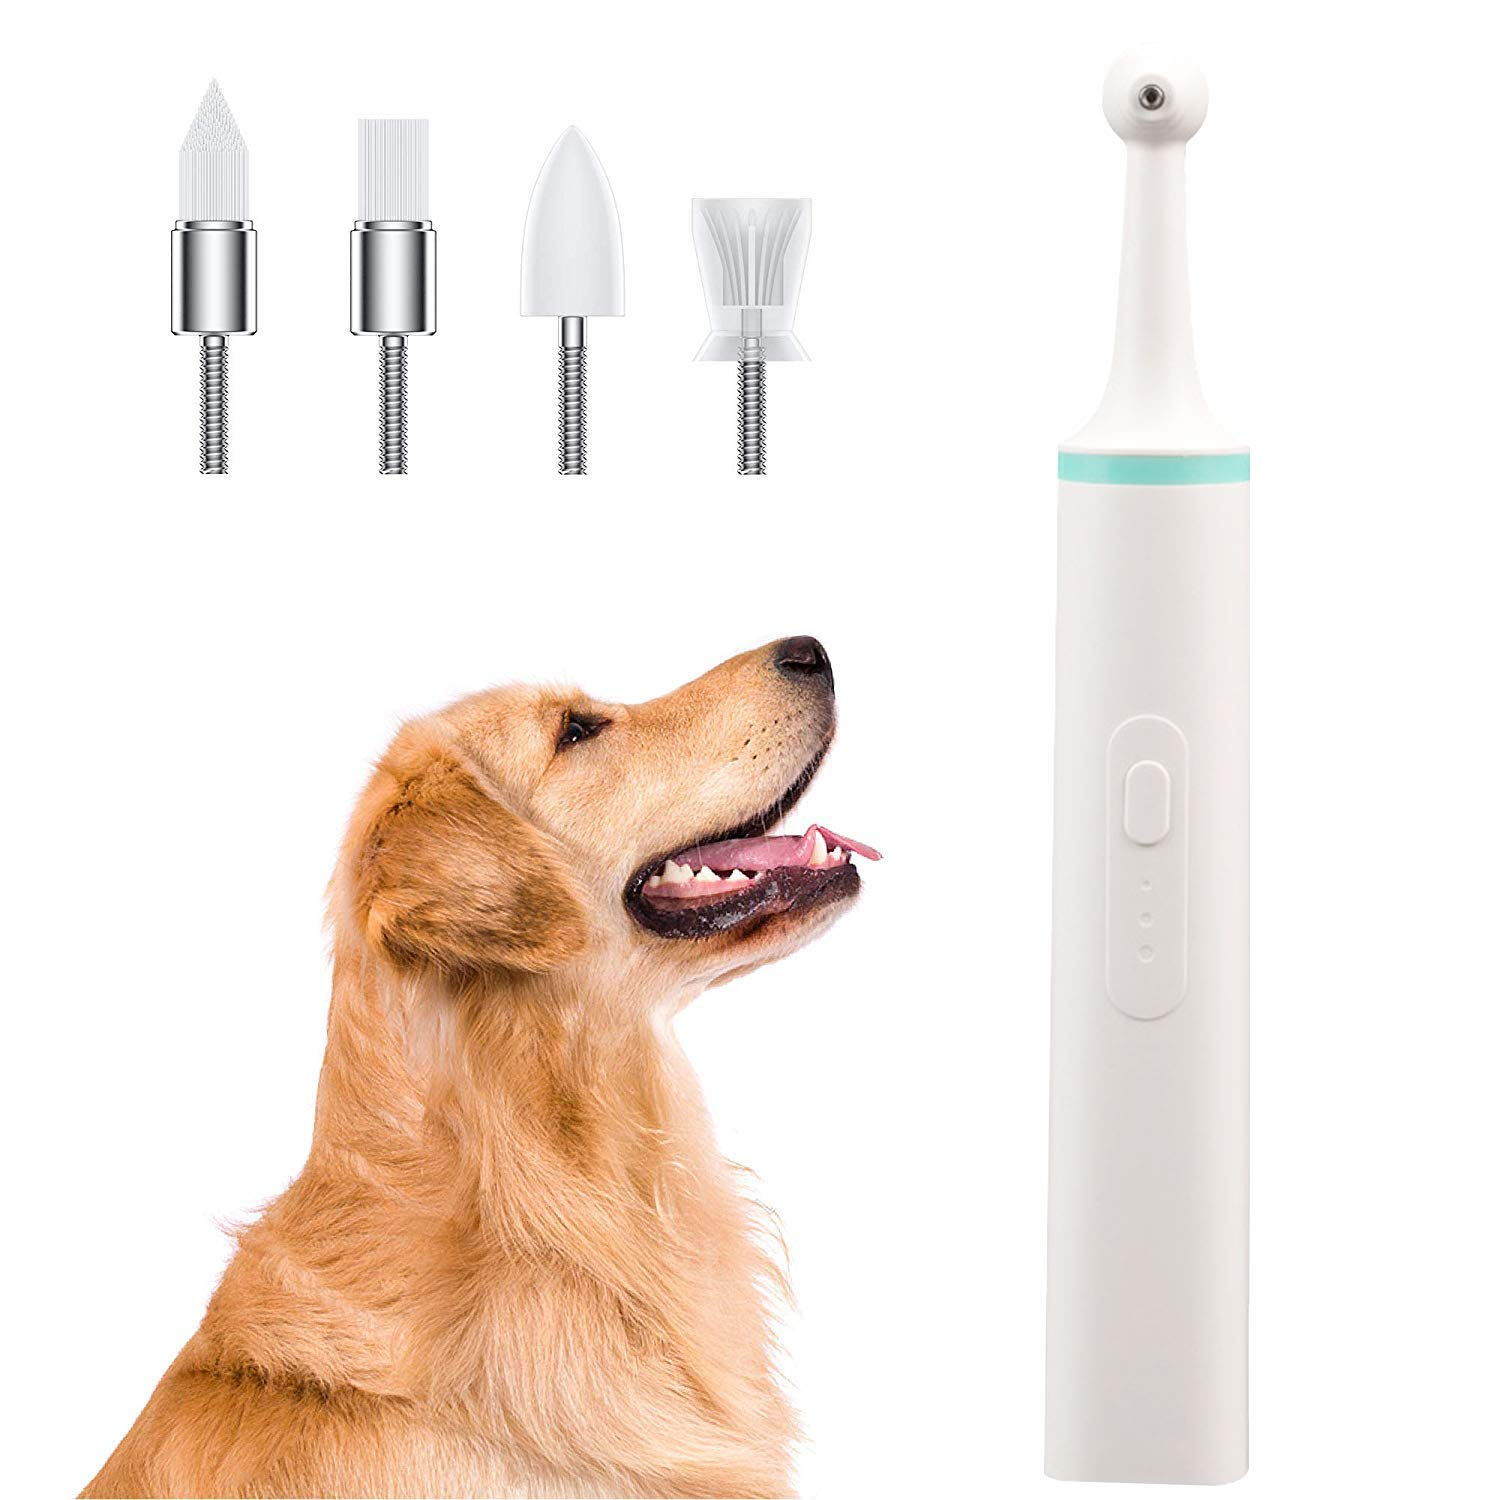 LXHSY Pet Electric Toothbrush - Dog Tartar Remover Tooth Polisher Pet Teeth Clean Whitening Tool with 4 Brush Heads and Humanized Non-Slip Handle Design by LXHSY